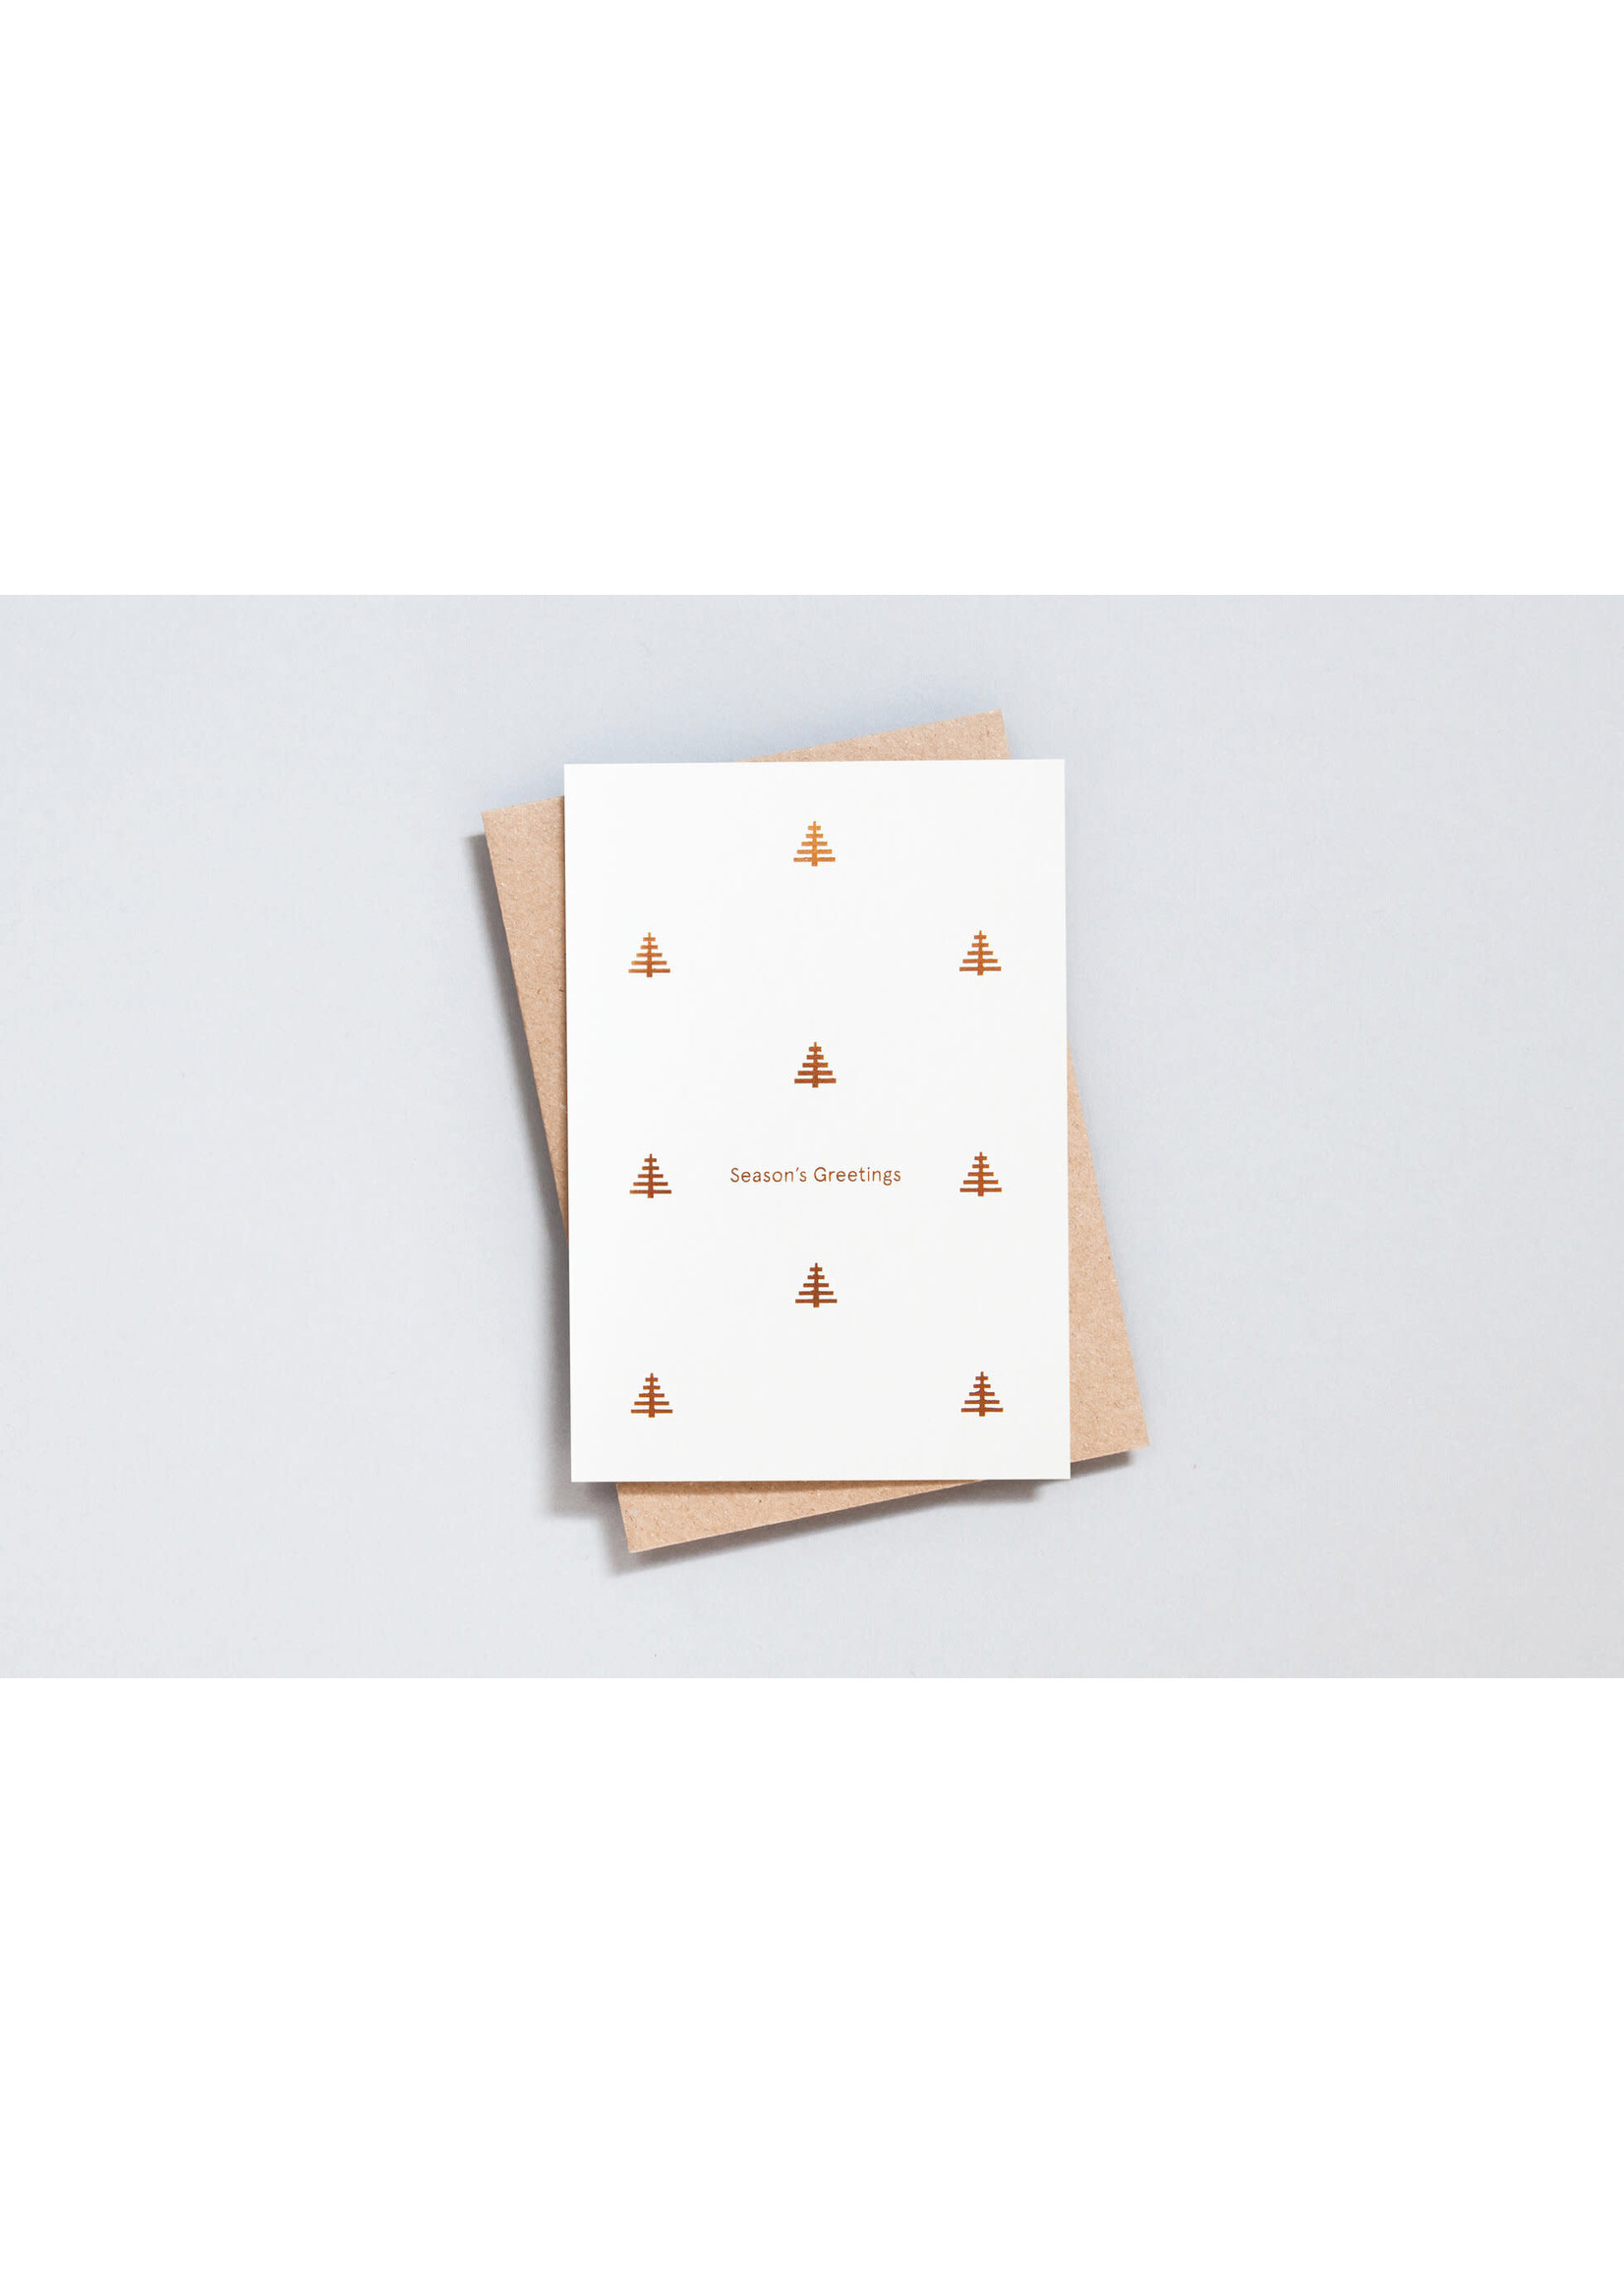 Ola Ola Season's Greetings - Tree Motif in Copper on Recycled Natural